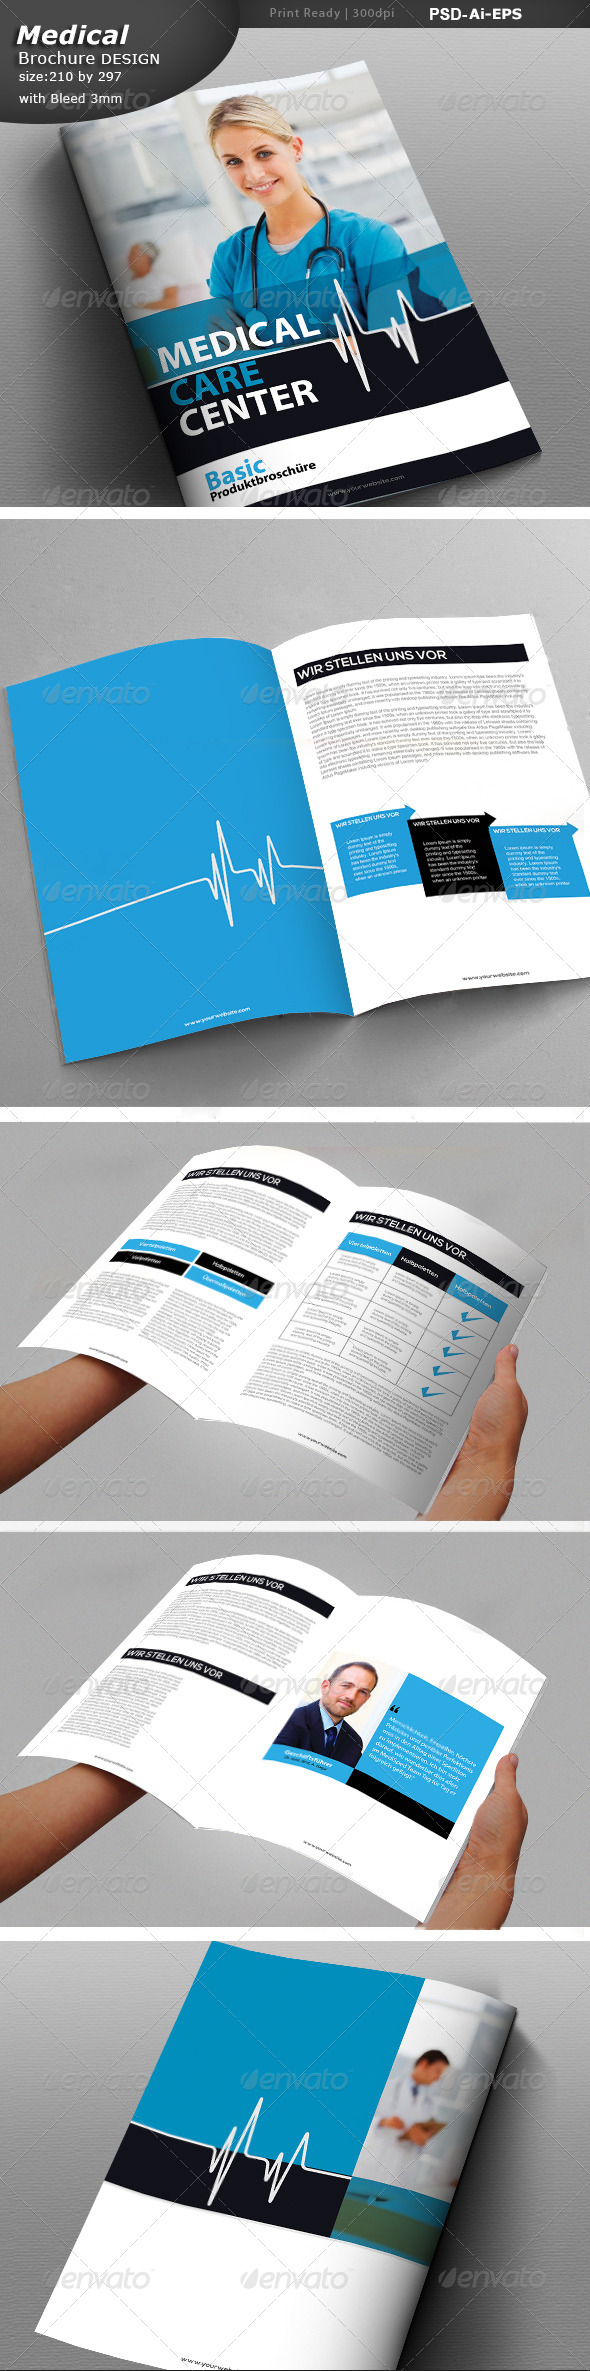 Medical Center Brochure Design  - Print Templates